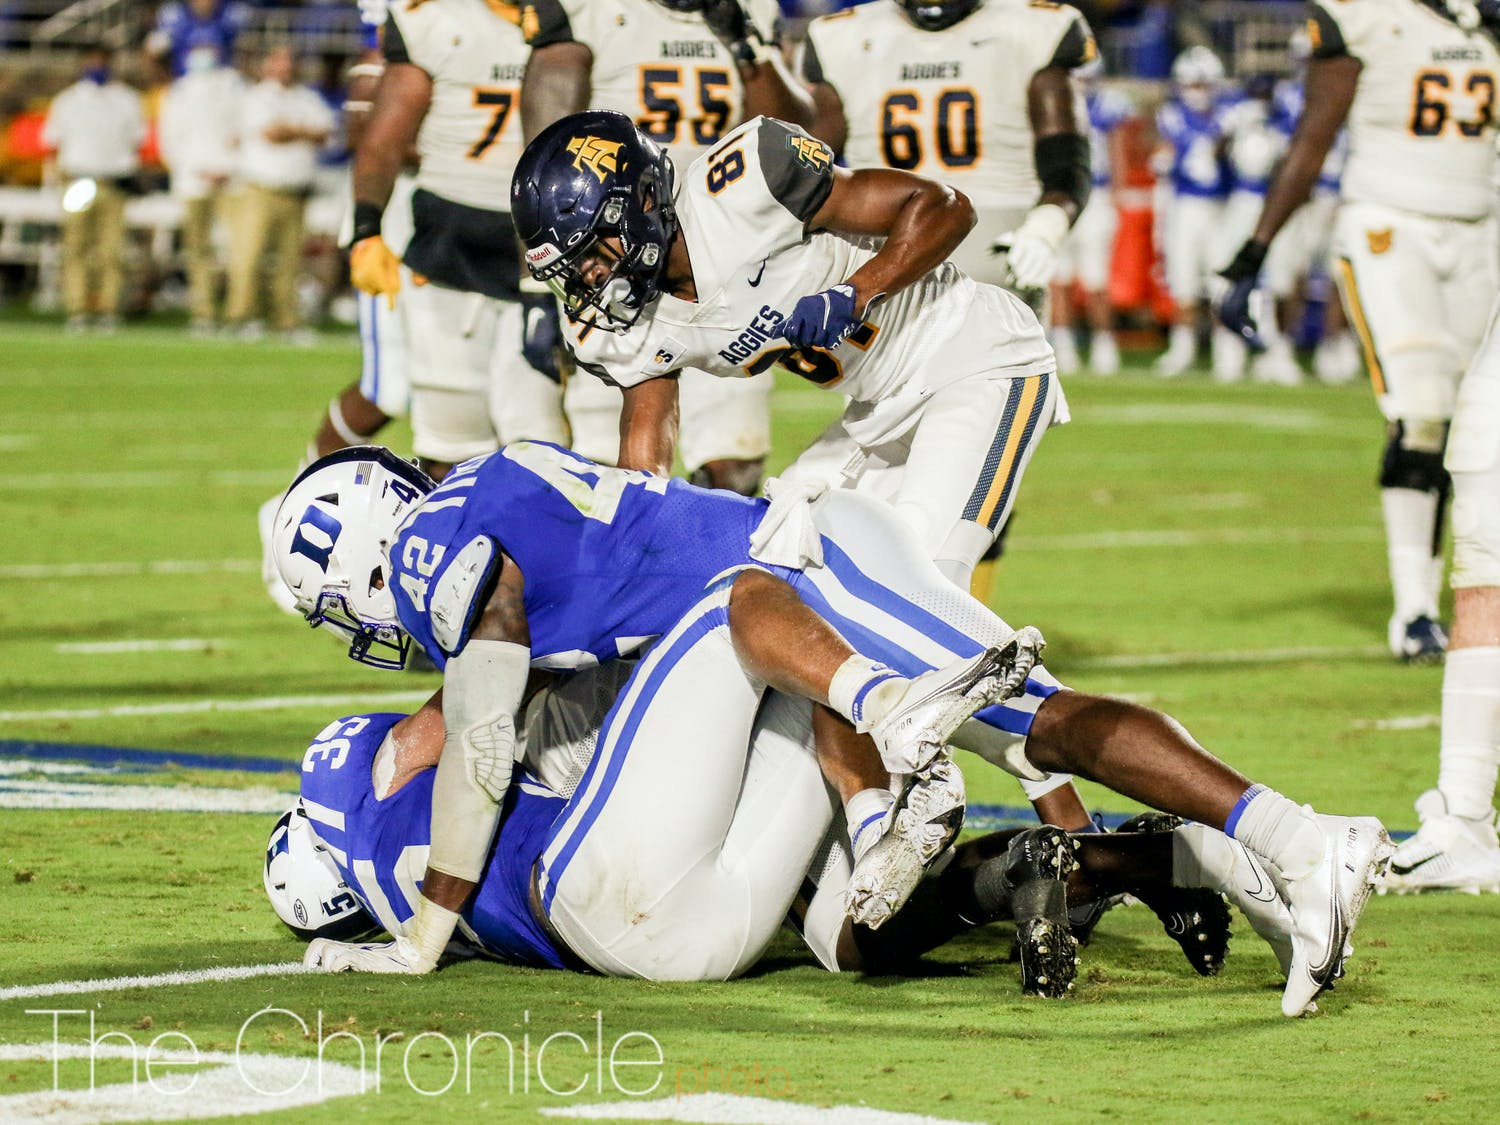 Shaka Heyward leads the Blue Devils with 32 total tackles.